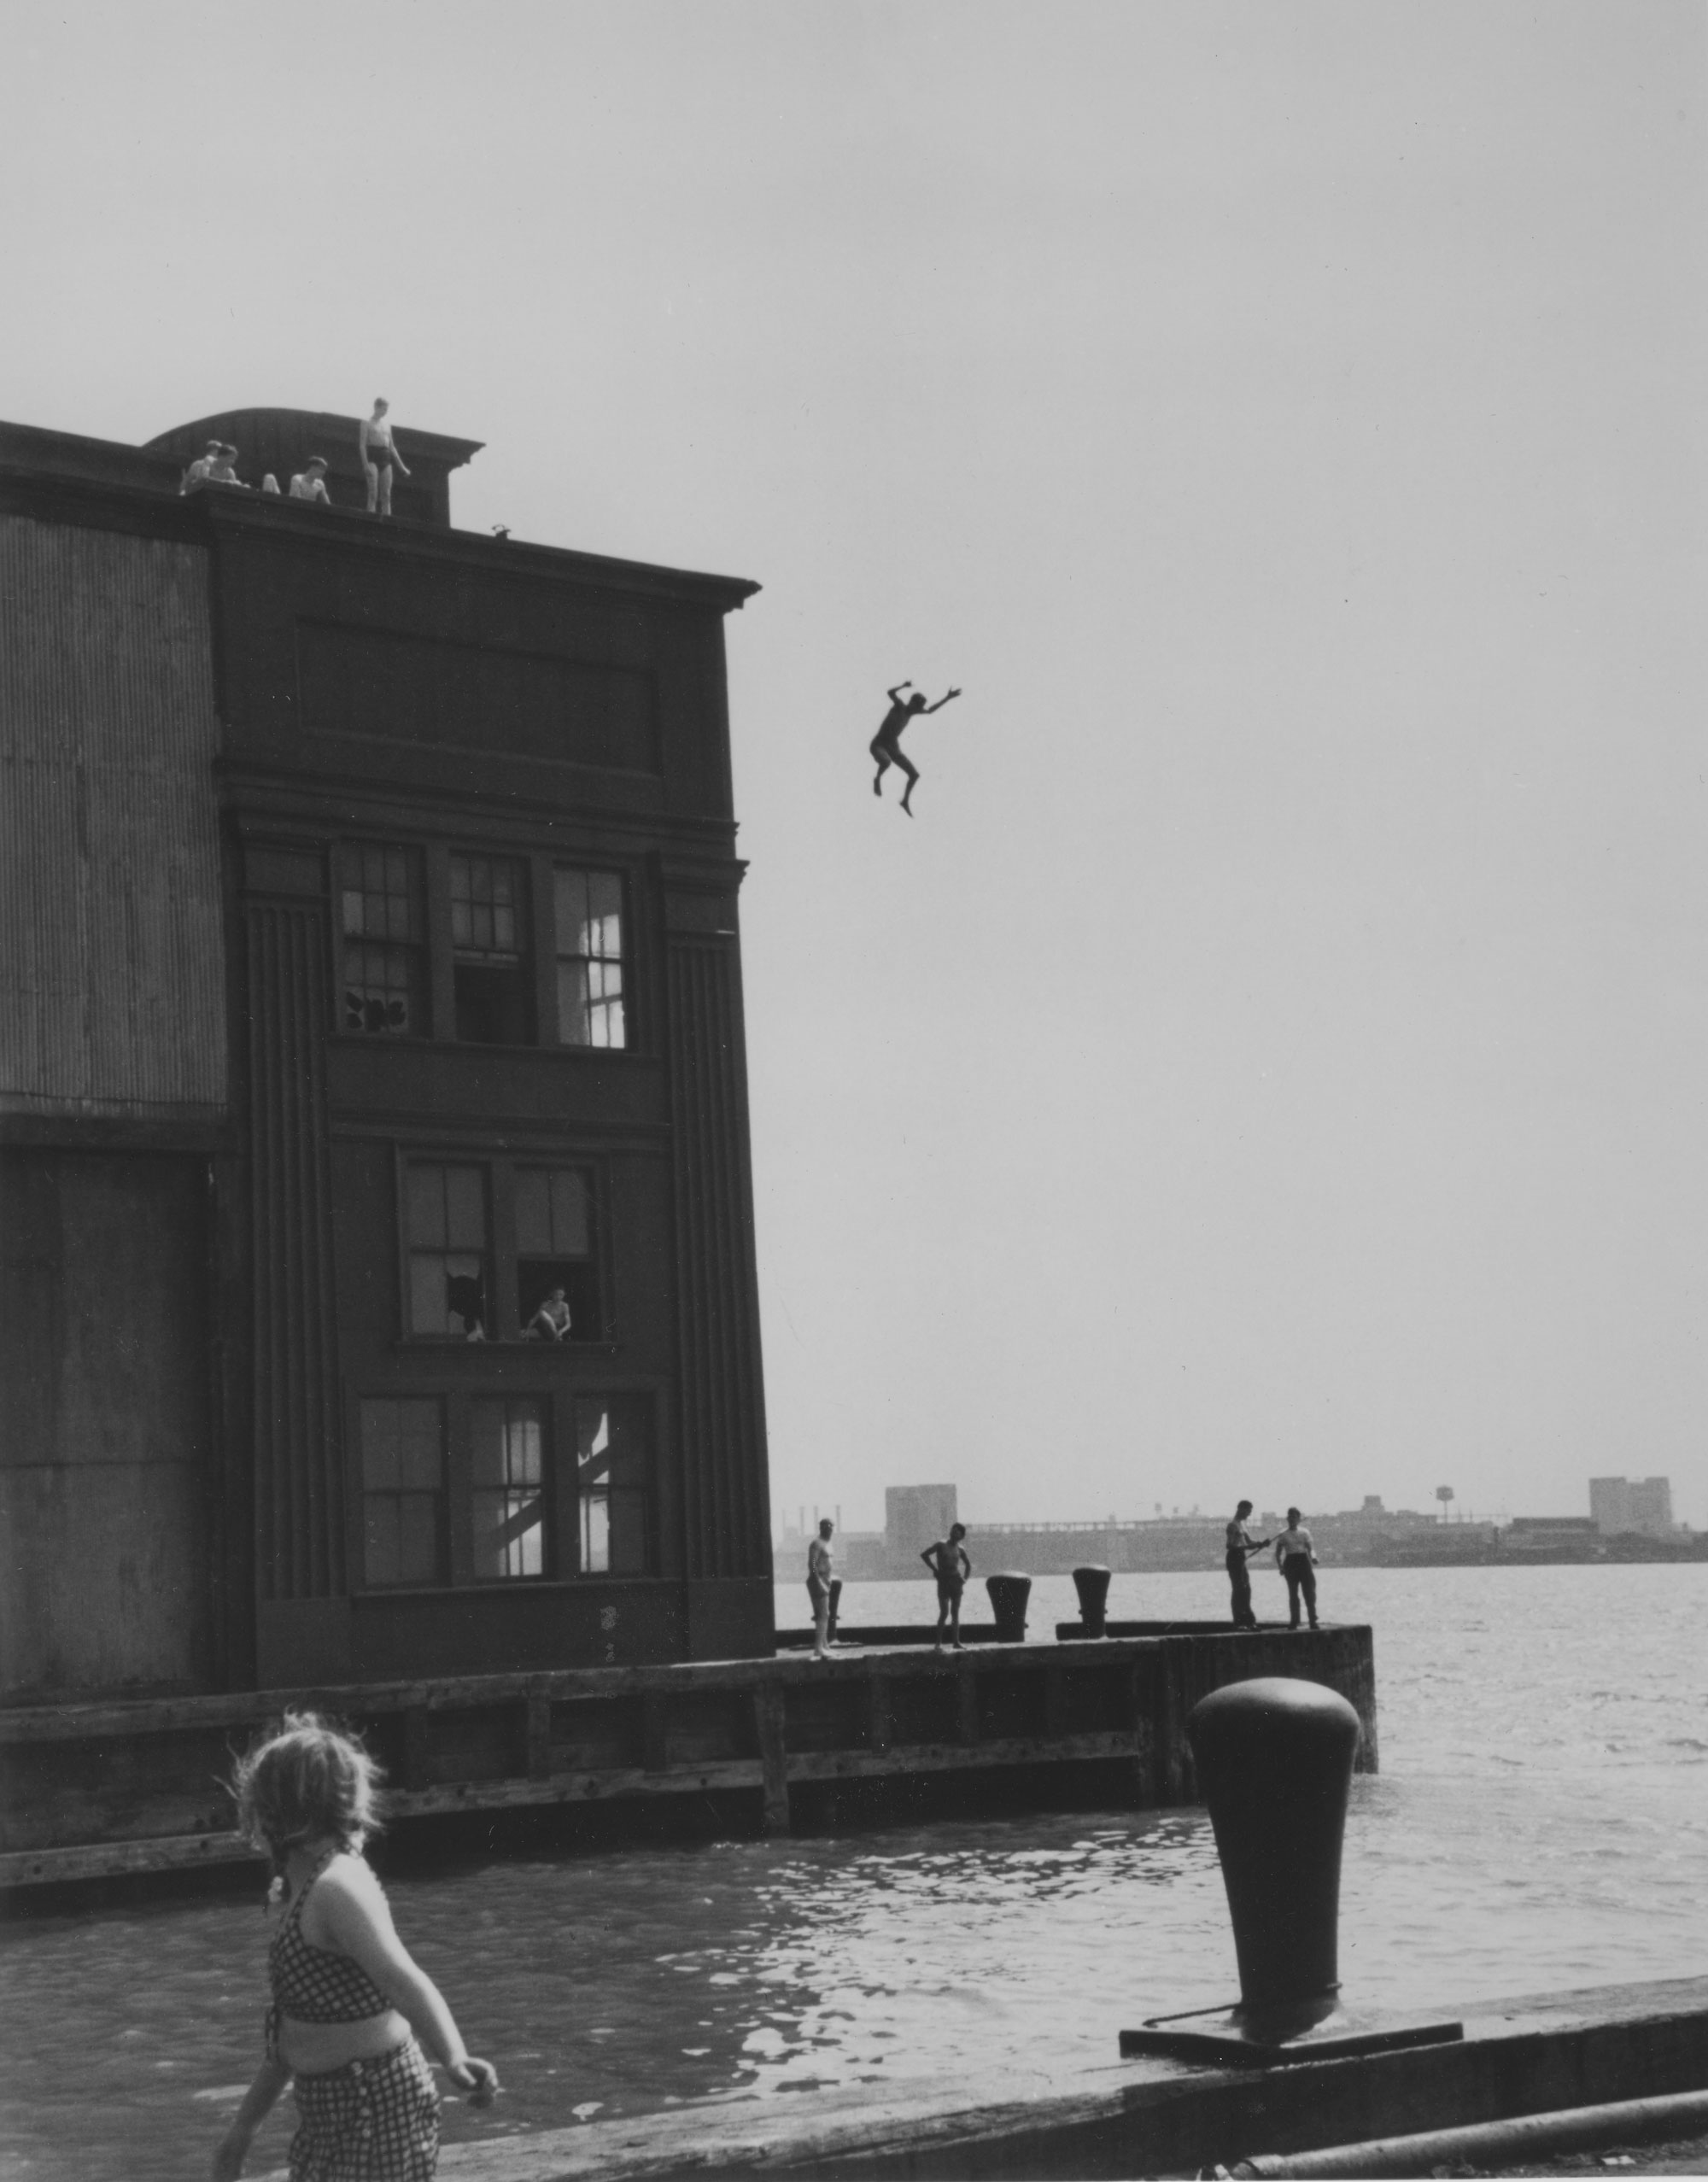 Ruth Orkin Boy Jumping into the Hudson River New York City 1948